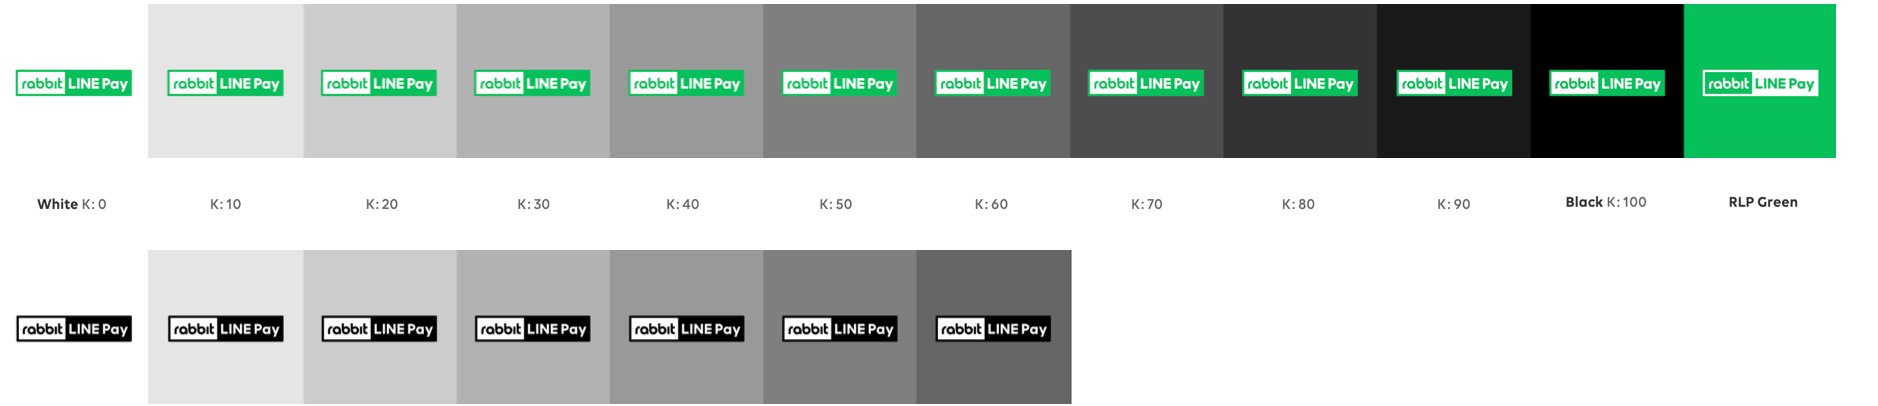 LINE Pay Logo Brightness